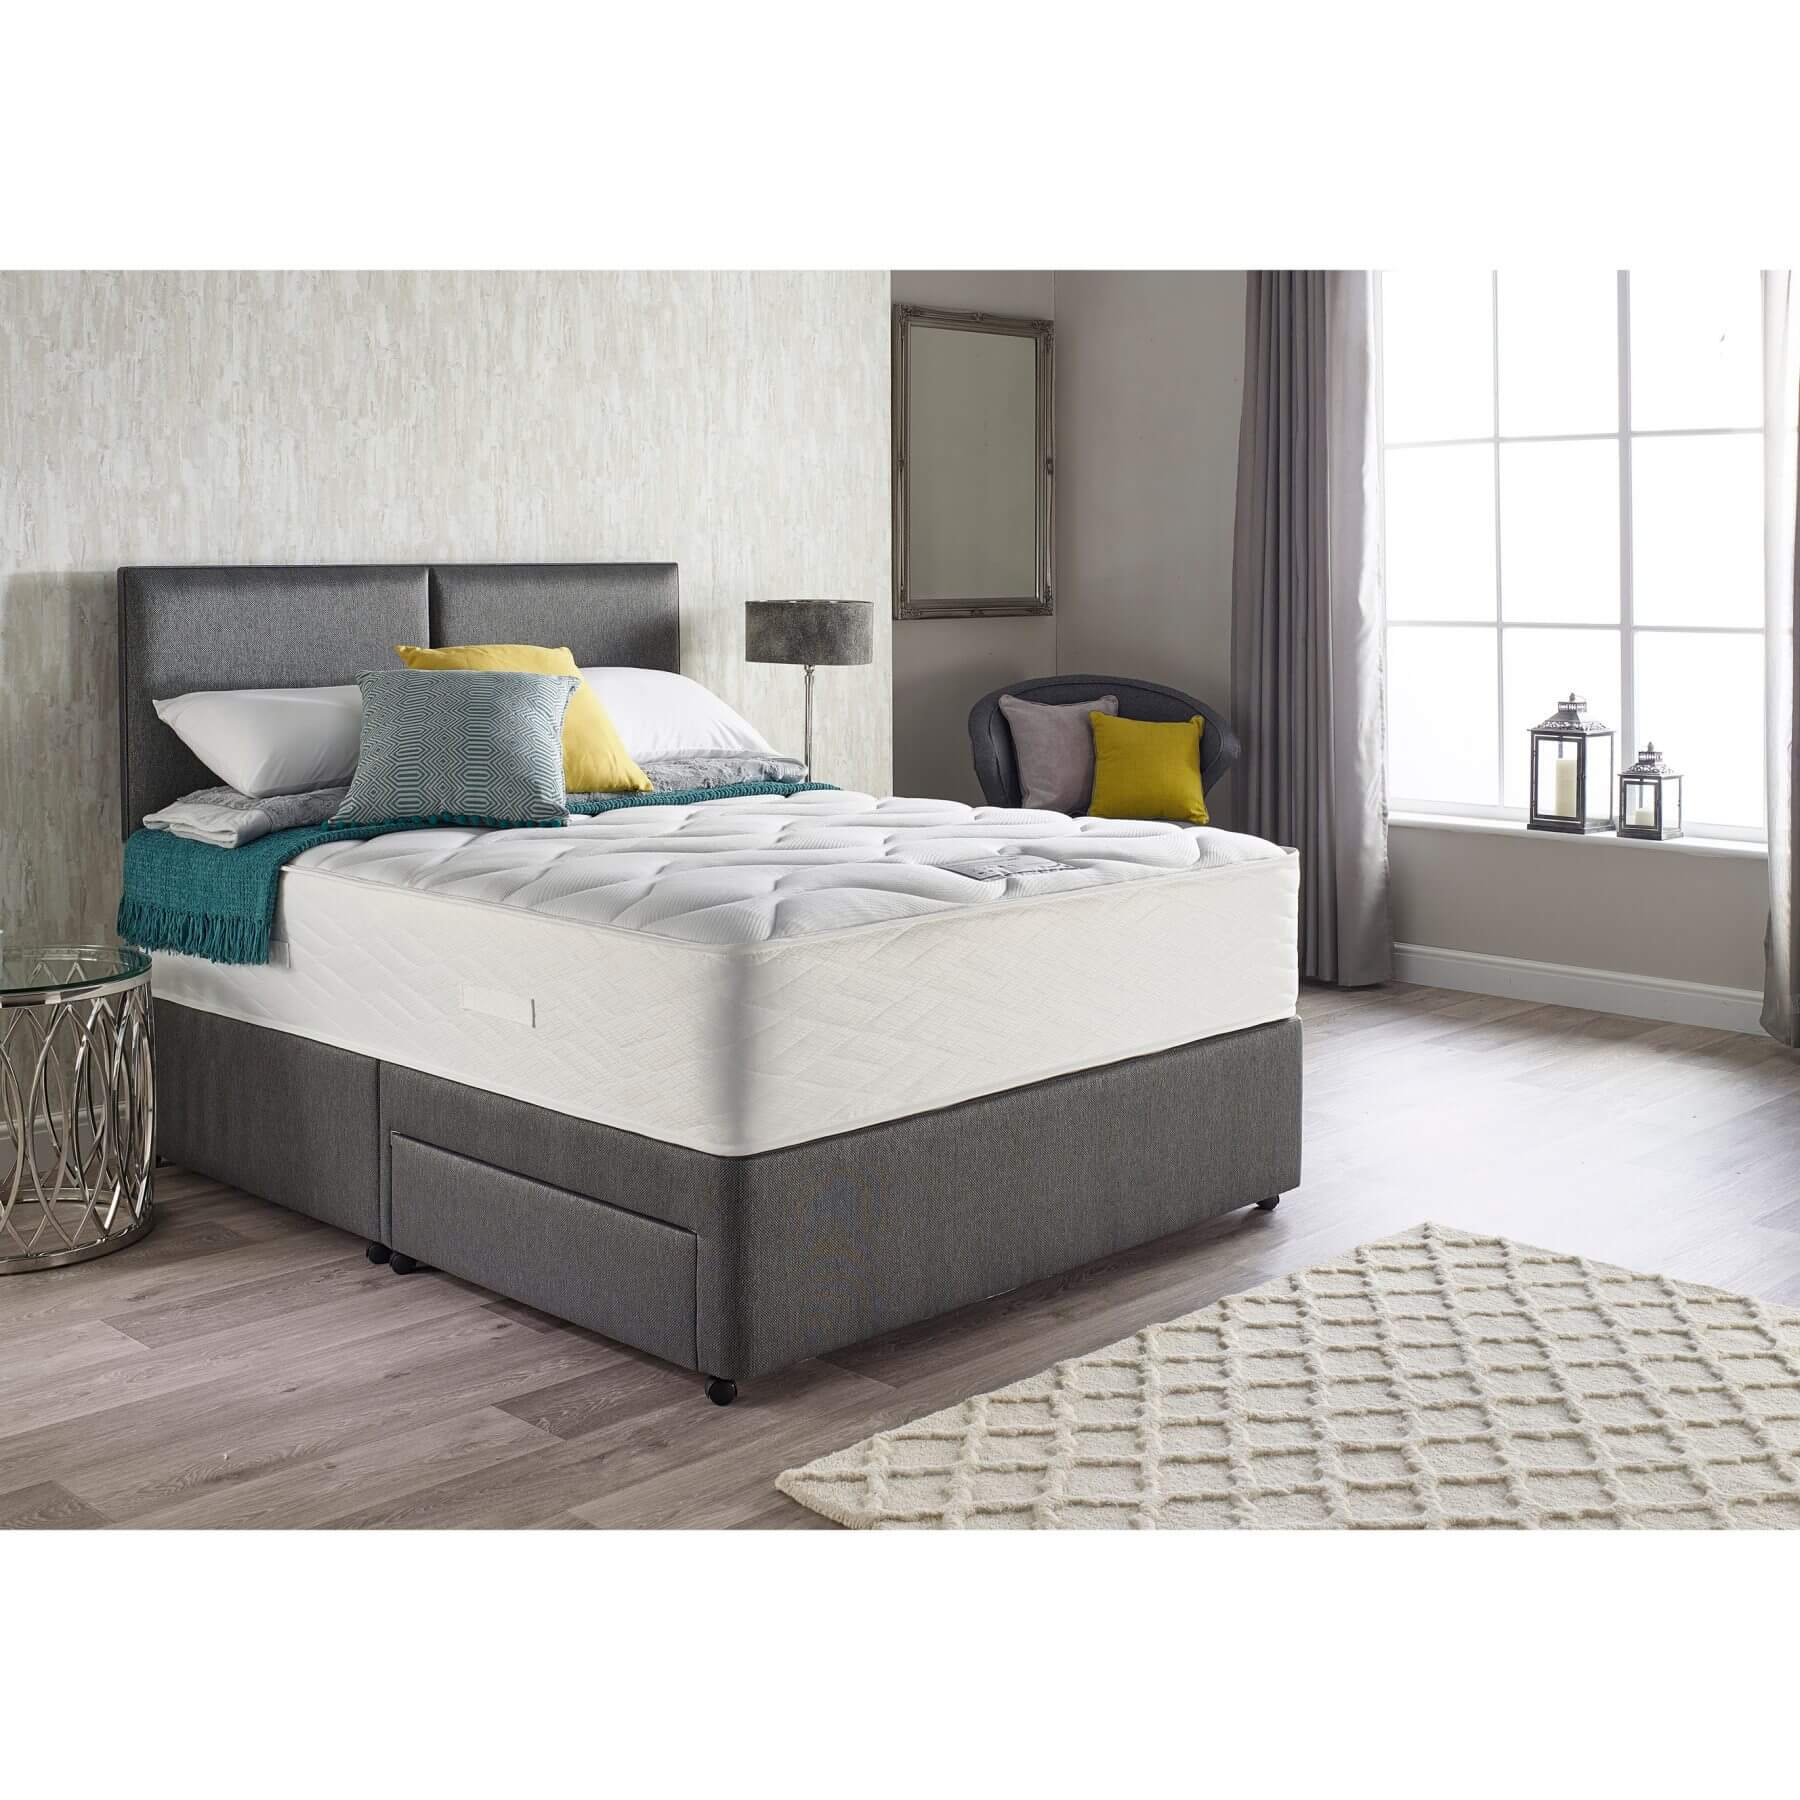 Myers Extra Latex Comfort 1800 Mattress & Base Divan Set - choice of bases and fabric colours (Fabric Colour: Granite, Storage Type: 4 Drawers, Be